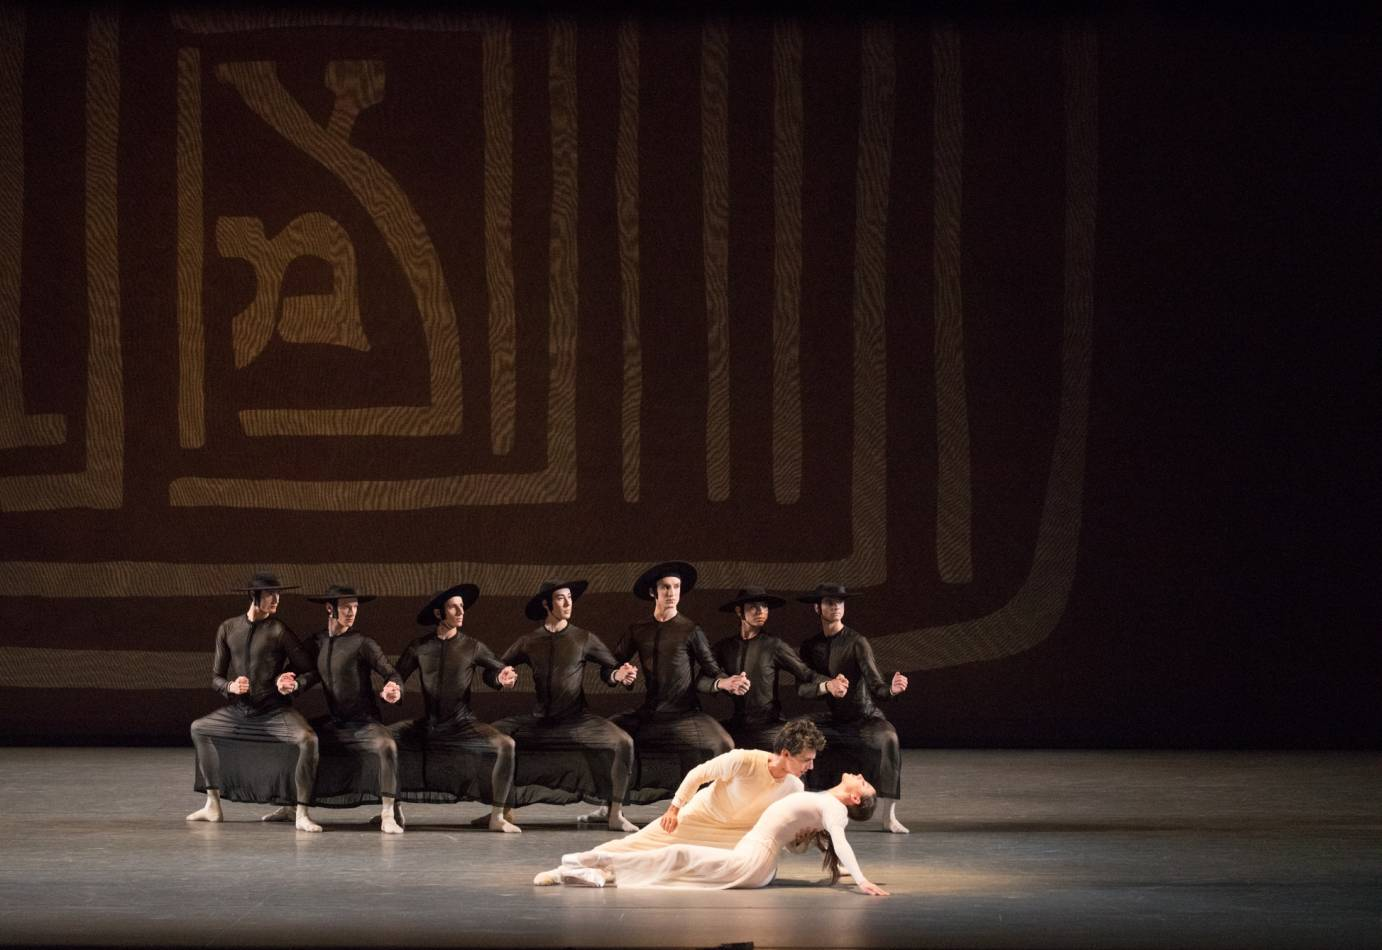 A line of dancers in deep second positions. A dancer lines in front of them.